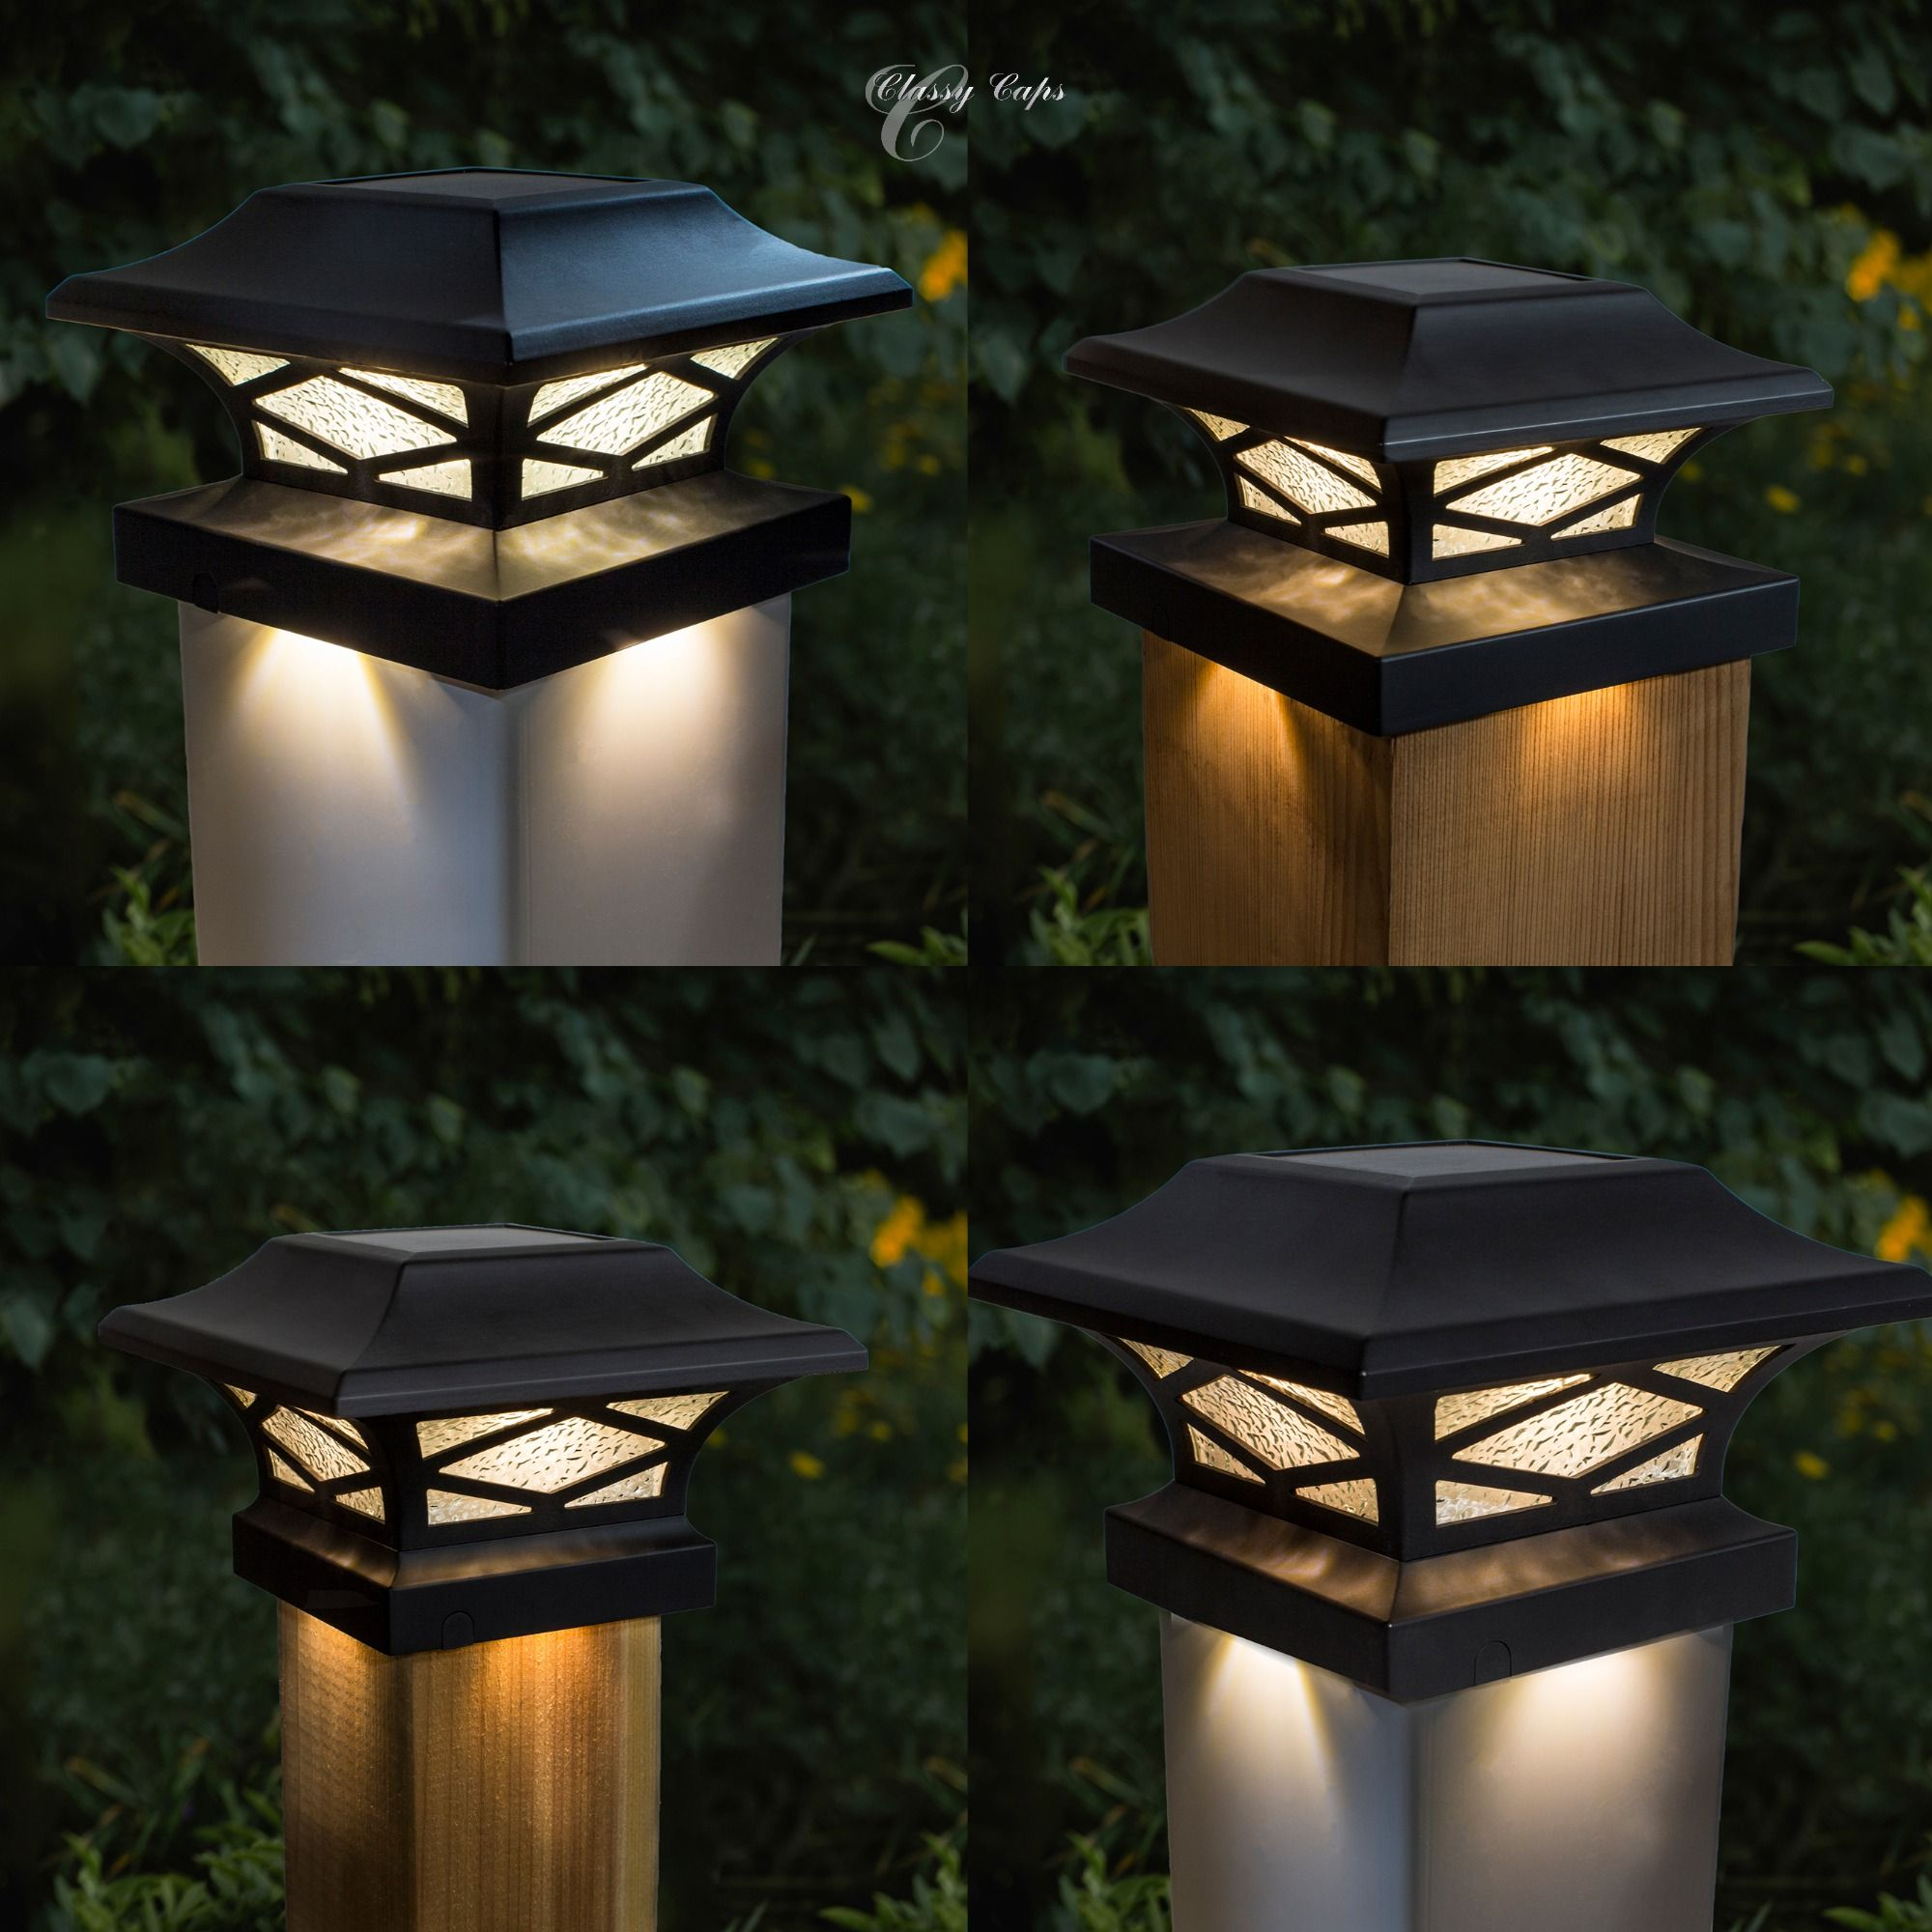 The New Kingsbrigde Solar Post Cap Is Dual Lighted And Fits Four Post Sizes Solar Post Lights Solar Post Caps Solar Fence Lights Solar powered fence post light